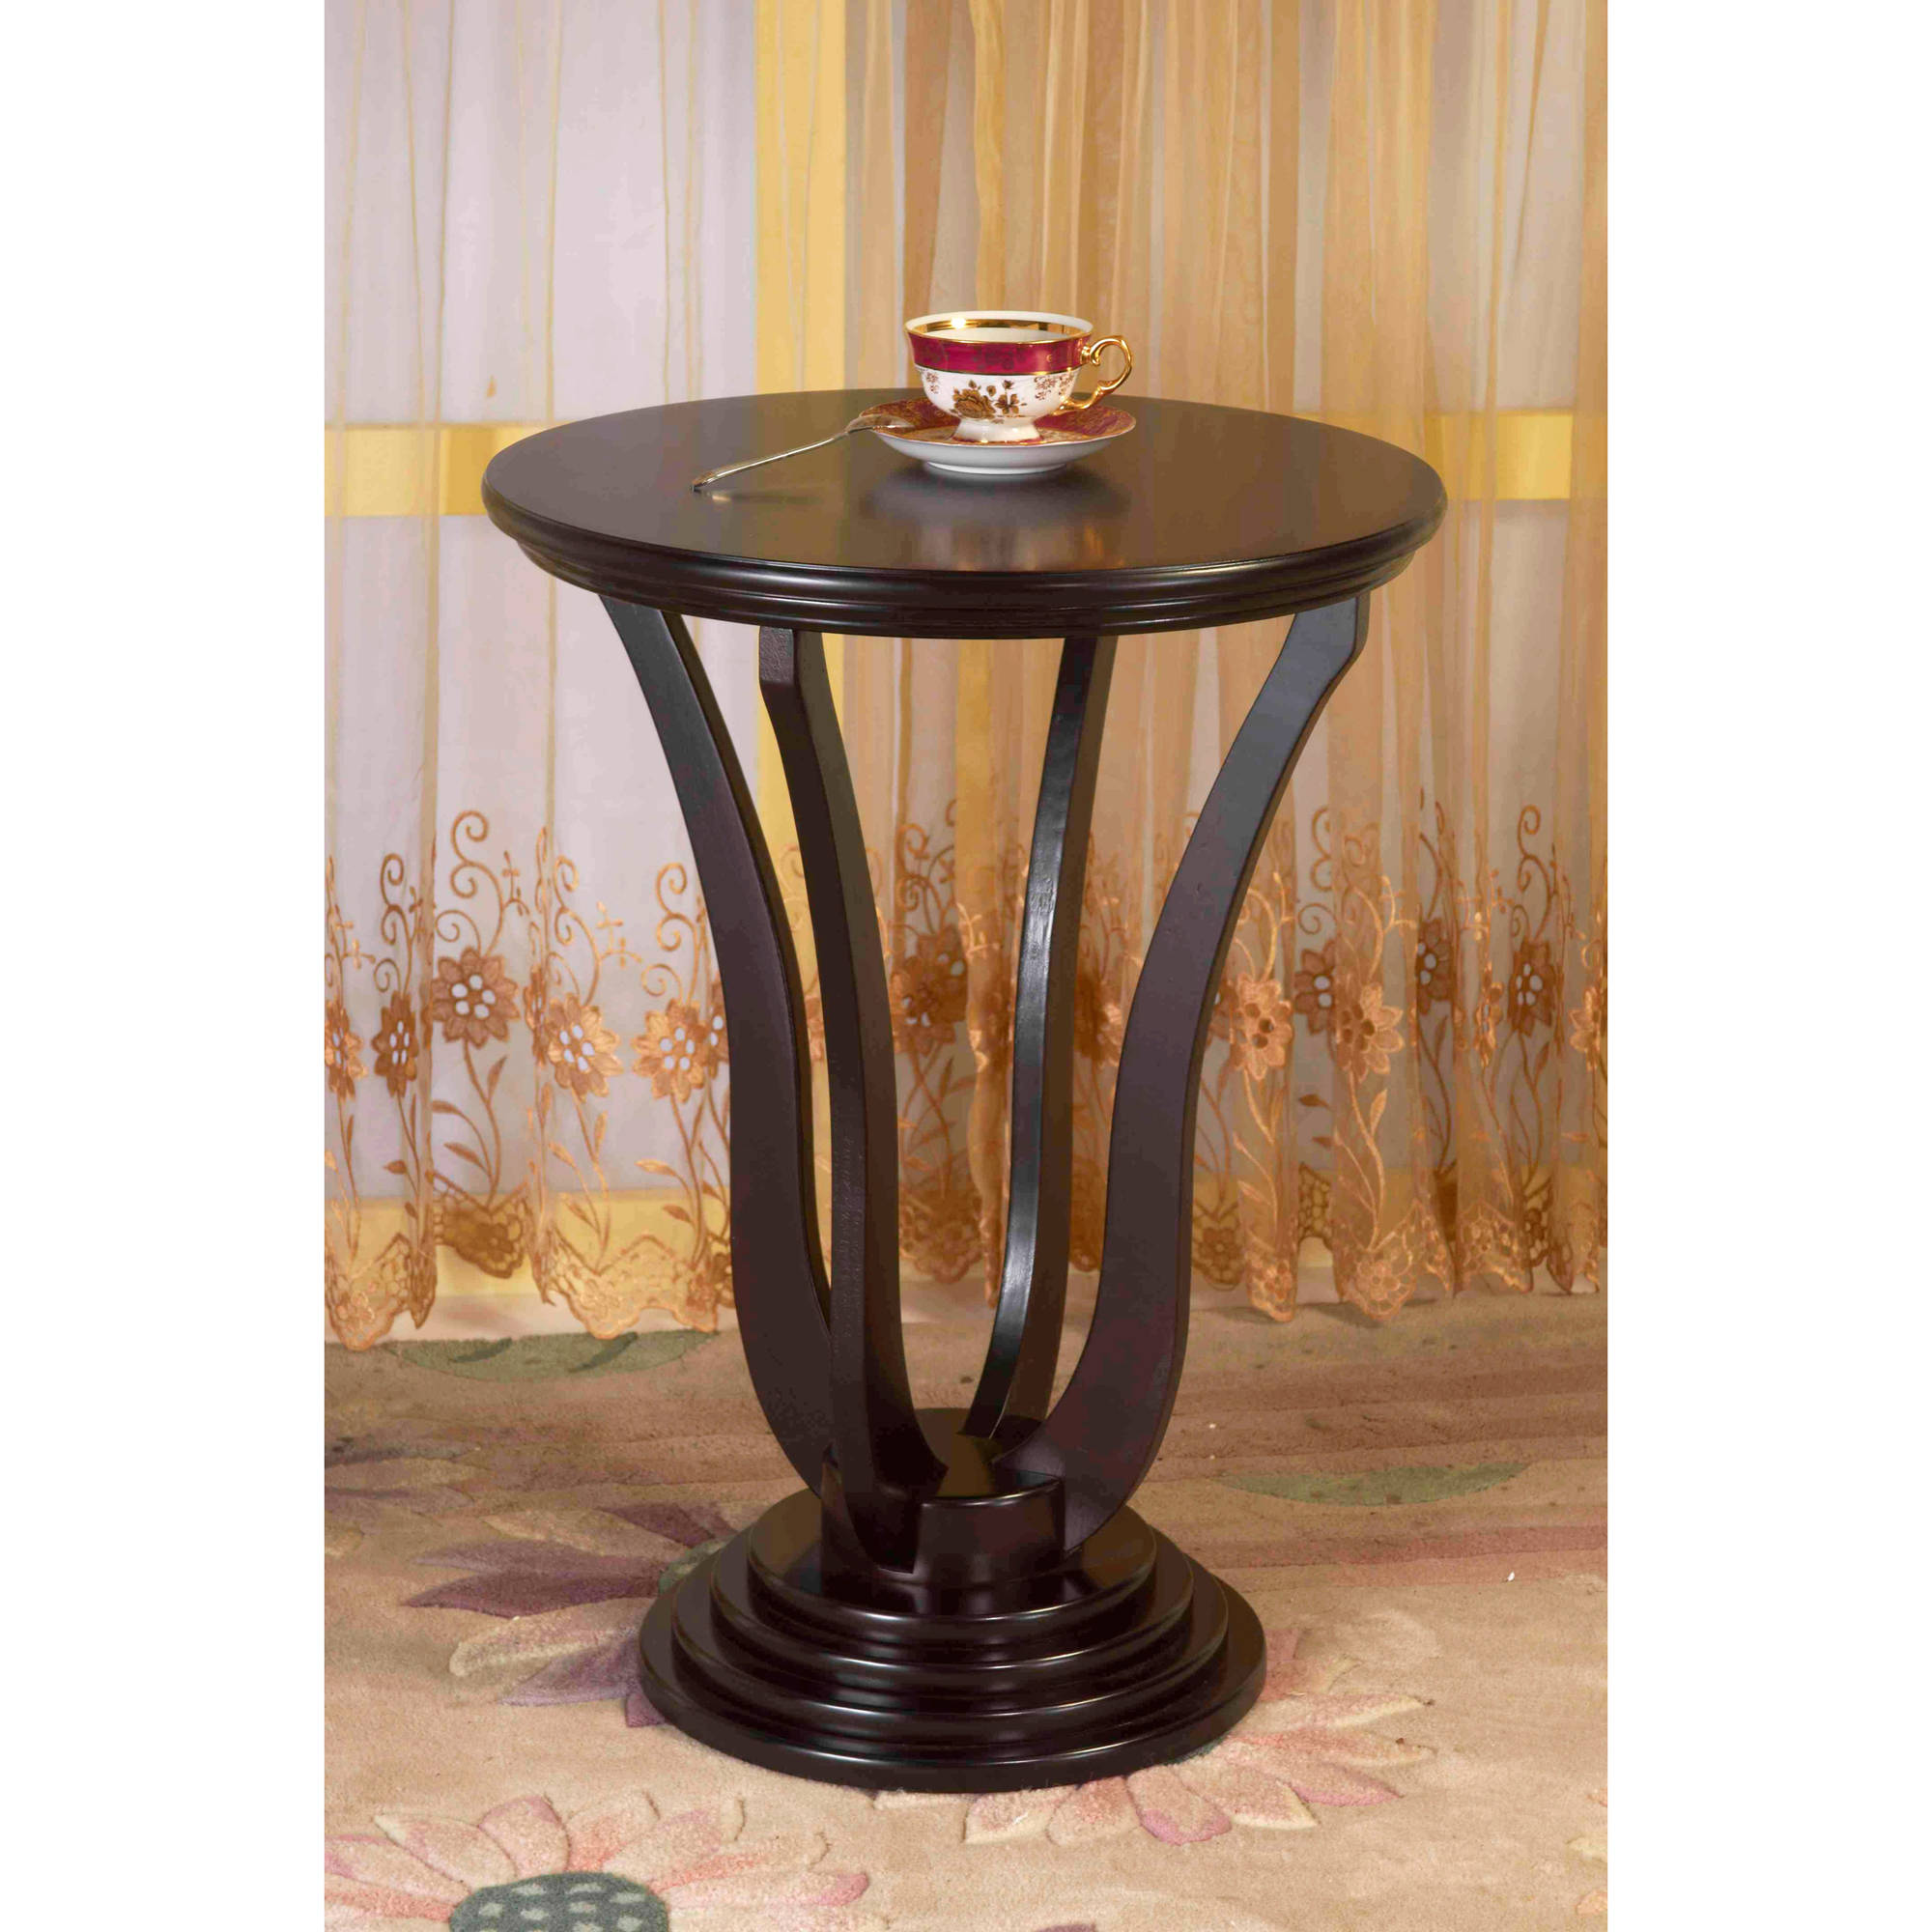 Details about home craft round end table espresso finish